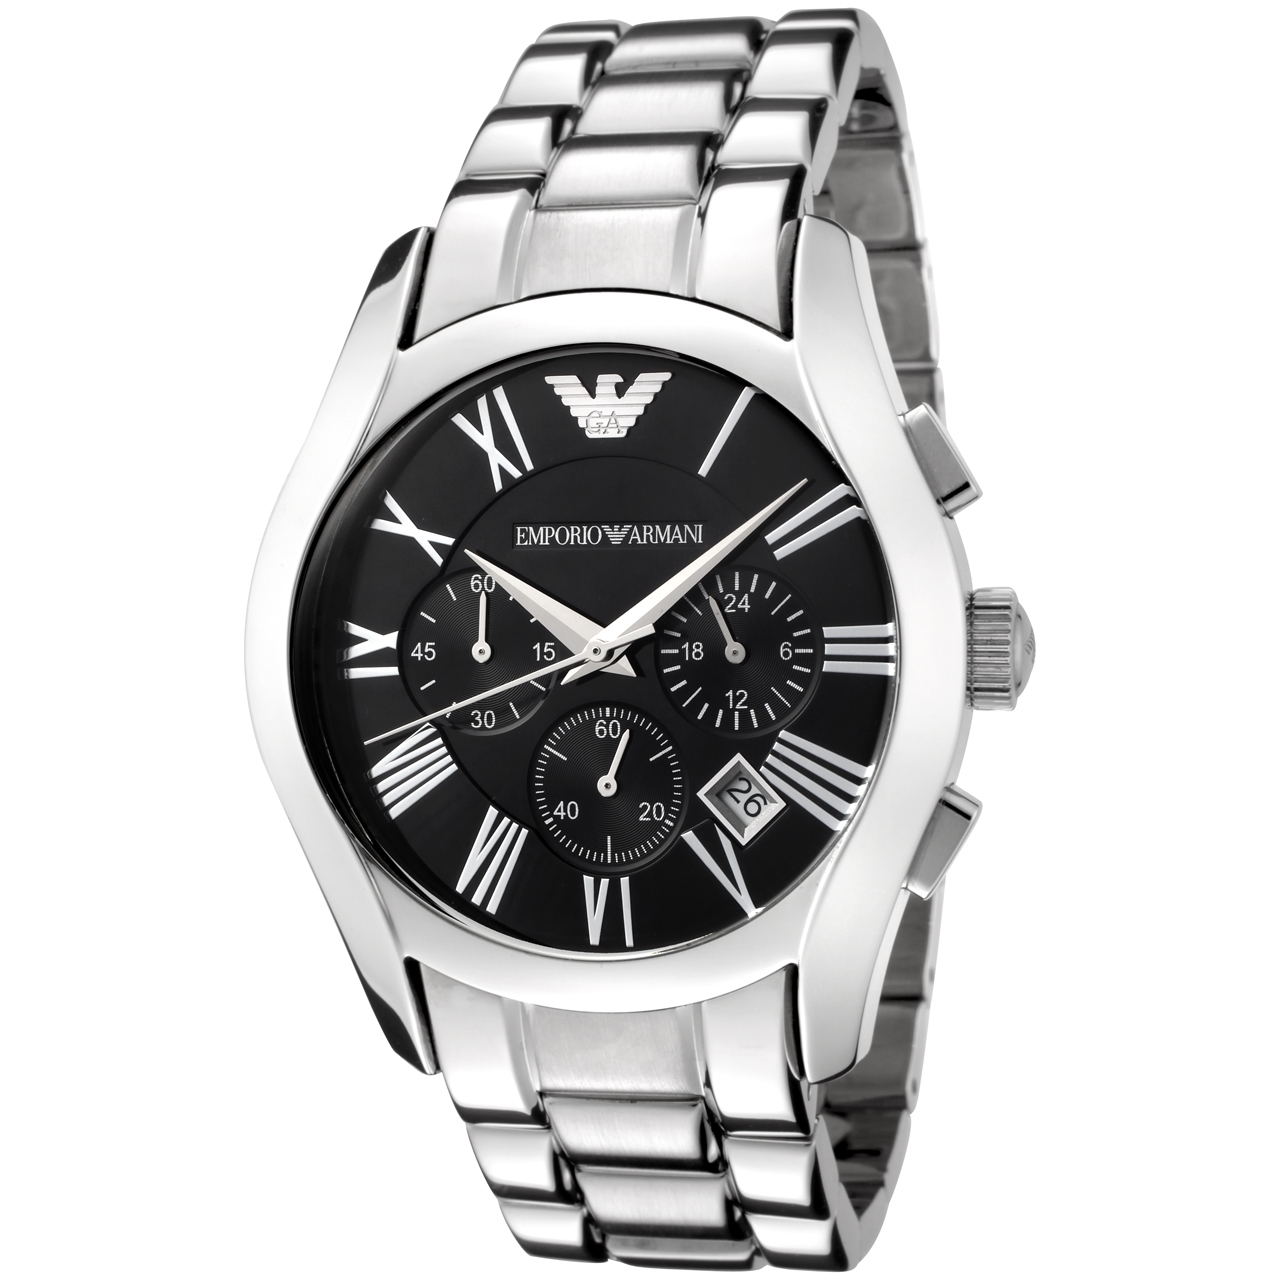 Emporio Armani Gents' Black Dial Stainless Steel Chronorgaph Round Watch AR0673